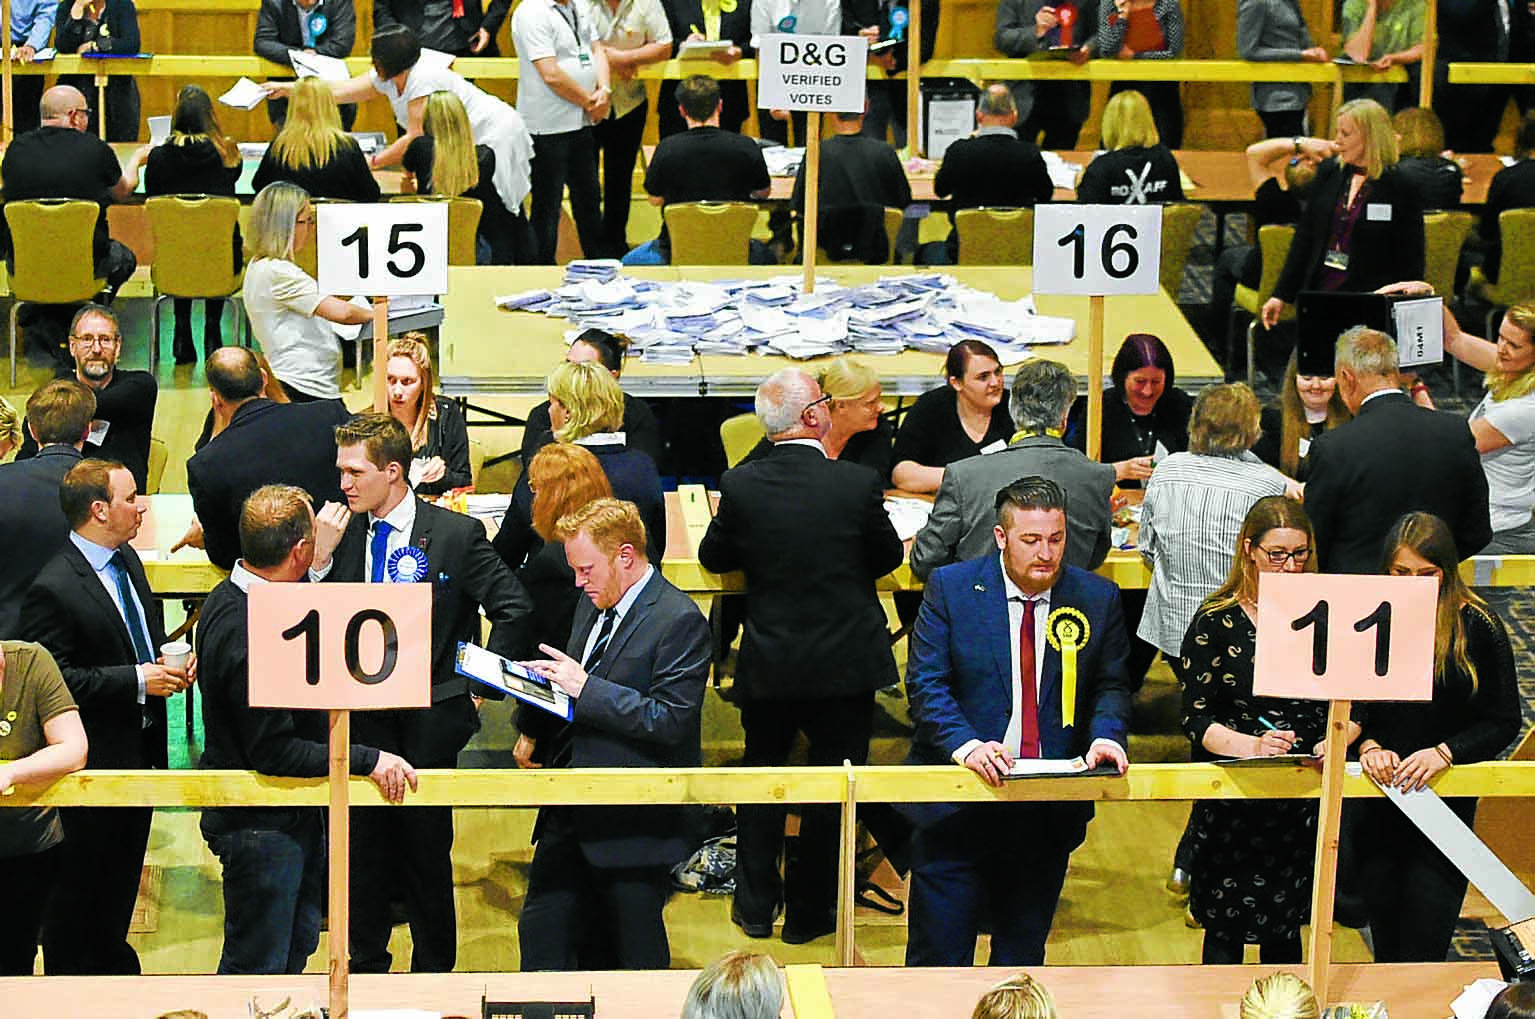 Keswick Centre to host election night - DnG24